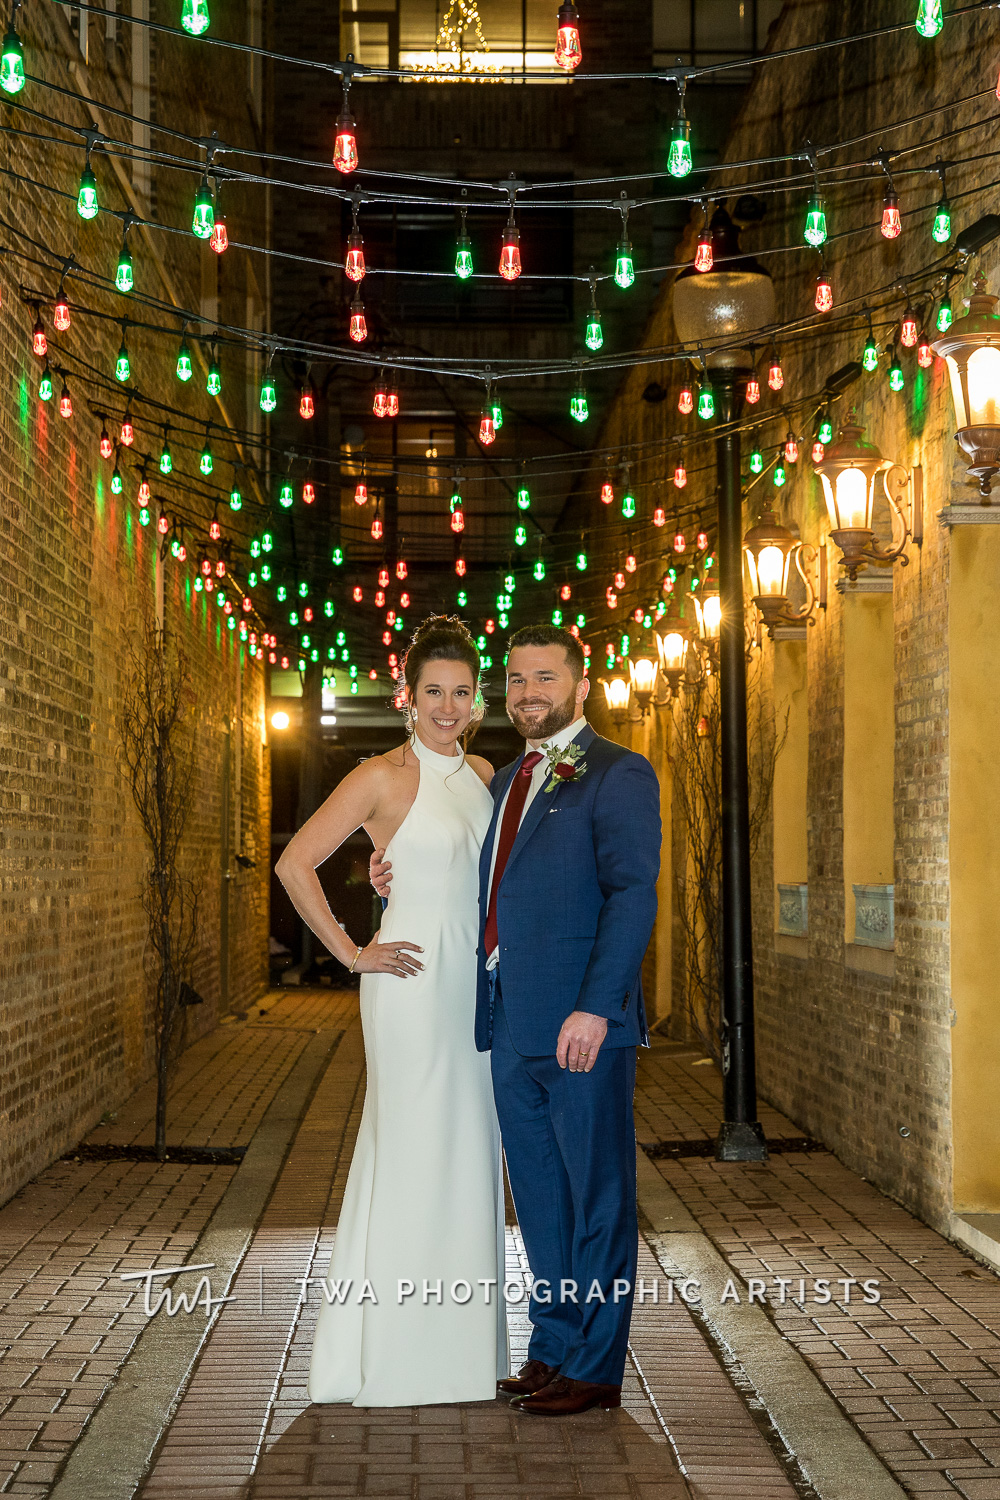 Danielle & Justin | TWA Photography Reviews | Chicago Wedding Photographers